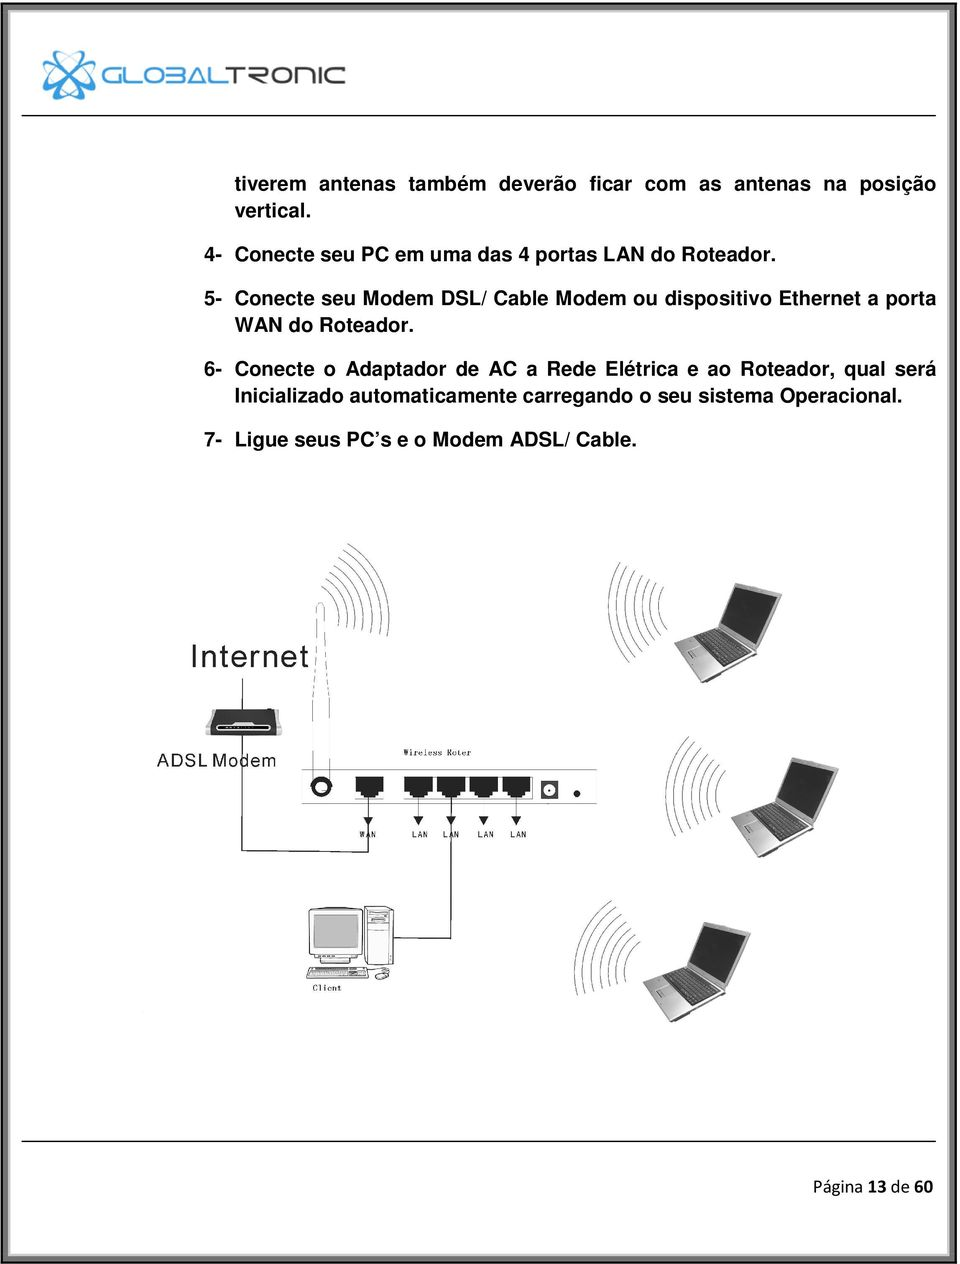 5- Conecte seu Modem DSL/ Cable Modem ou dispositivo Ethernet a porta WAN do Roteador.